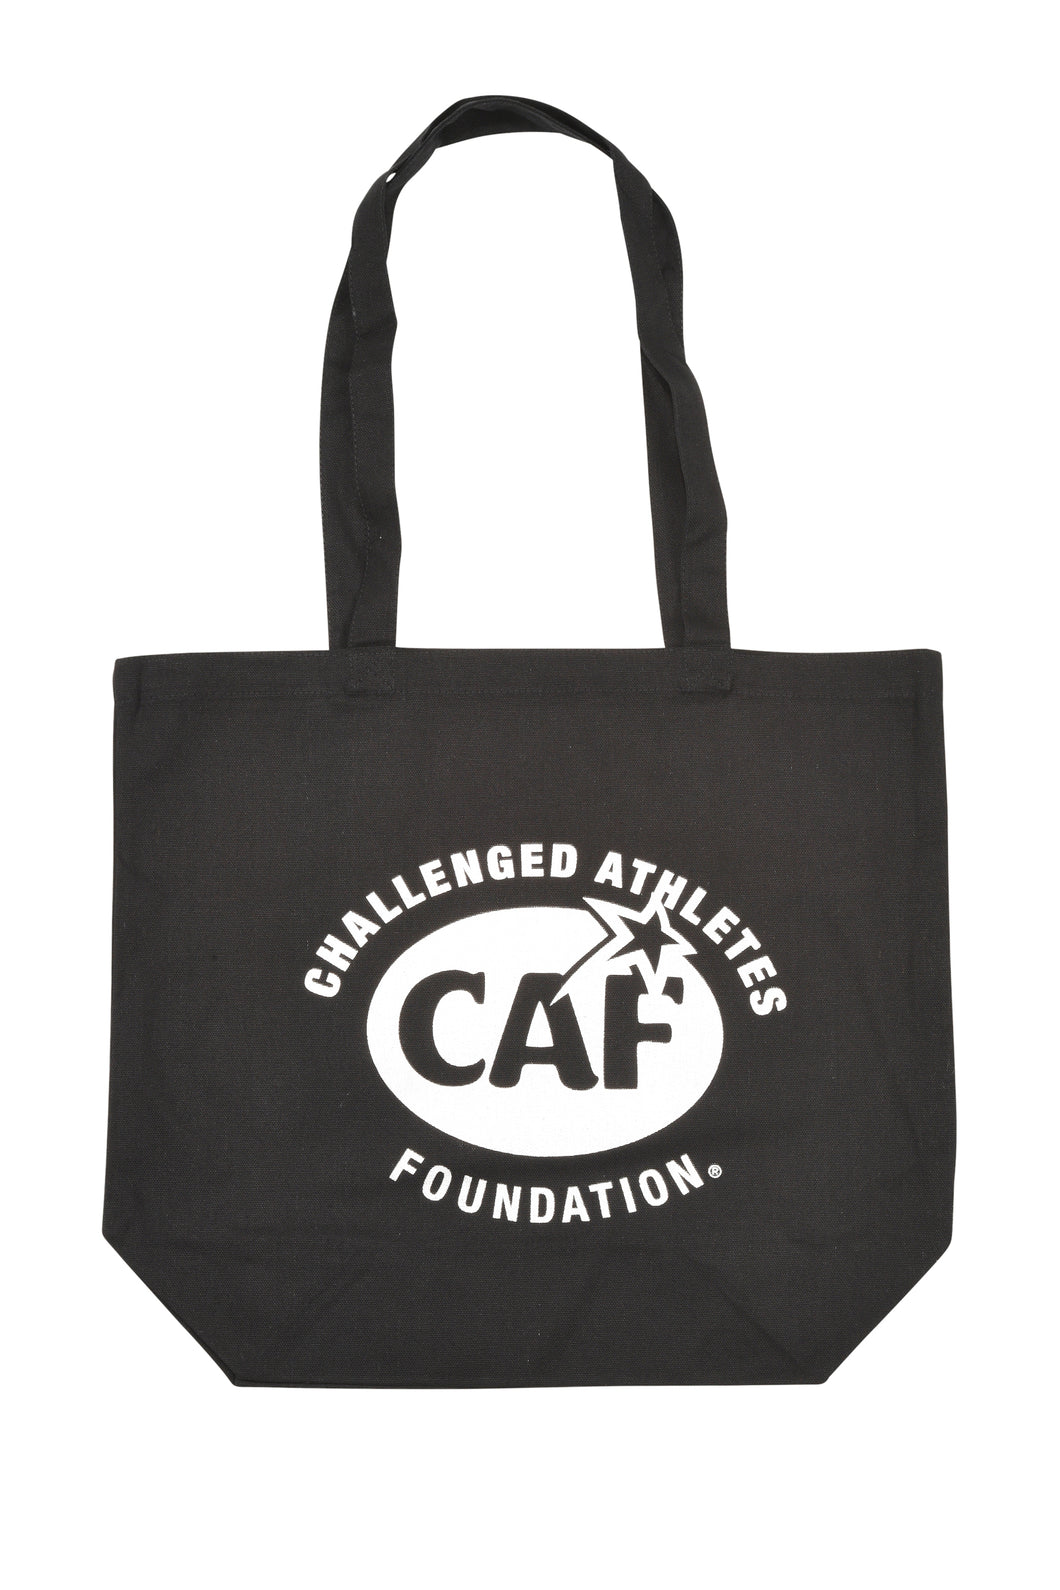 CAF/NYC Black Canvas Tote Bag